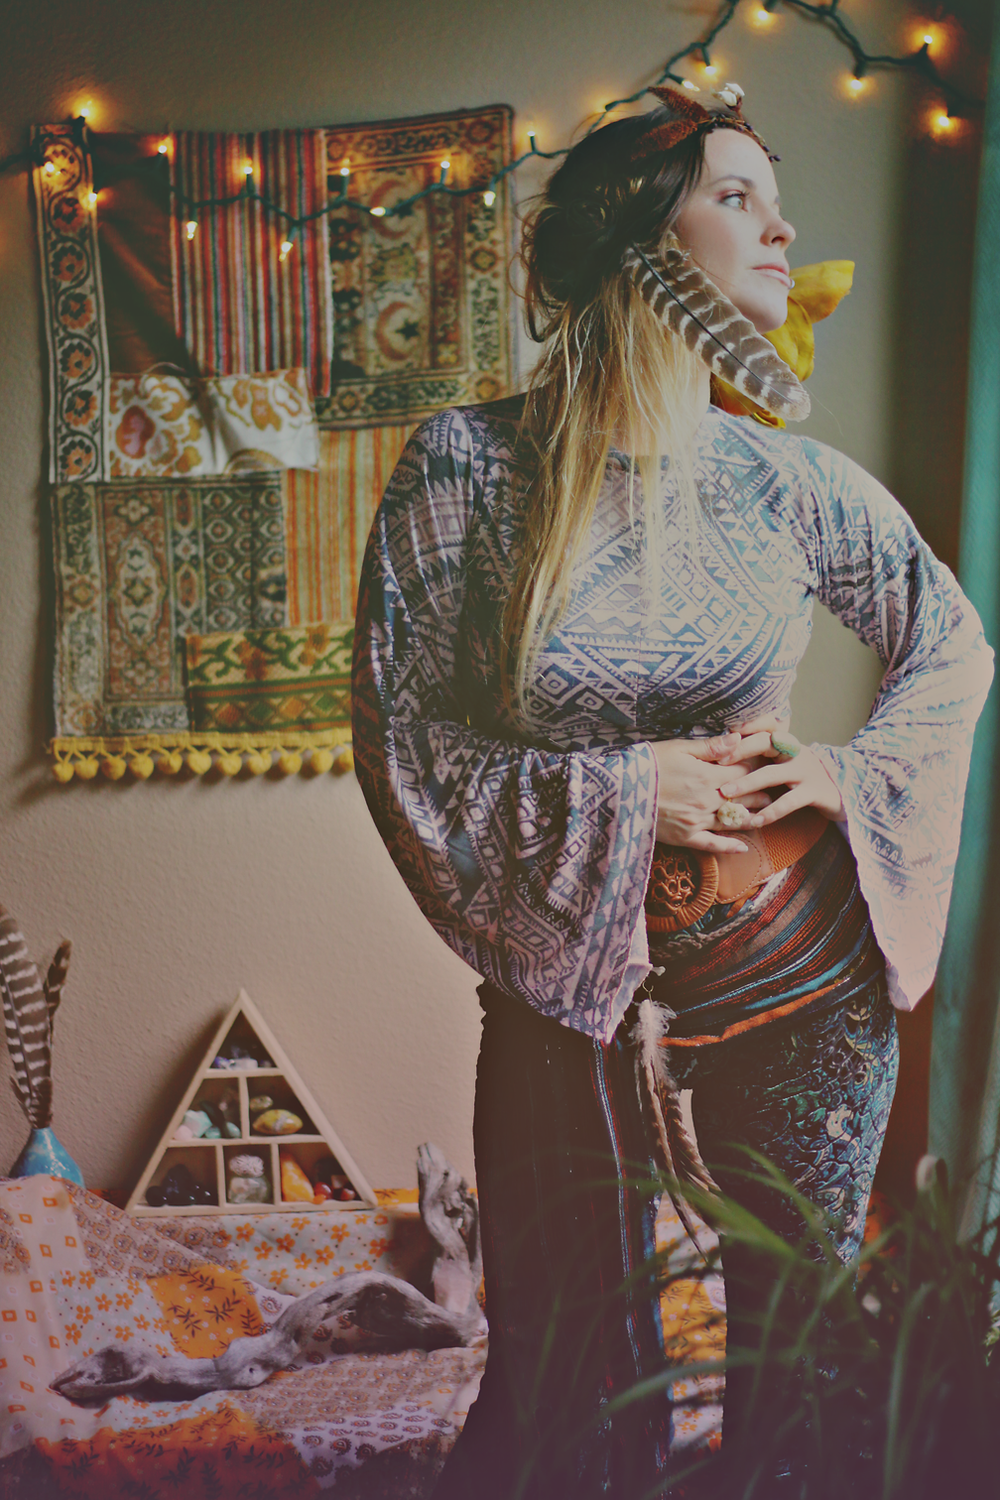 Lookbook via The Bohemian Collective